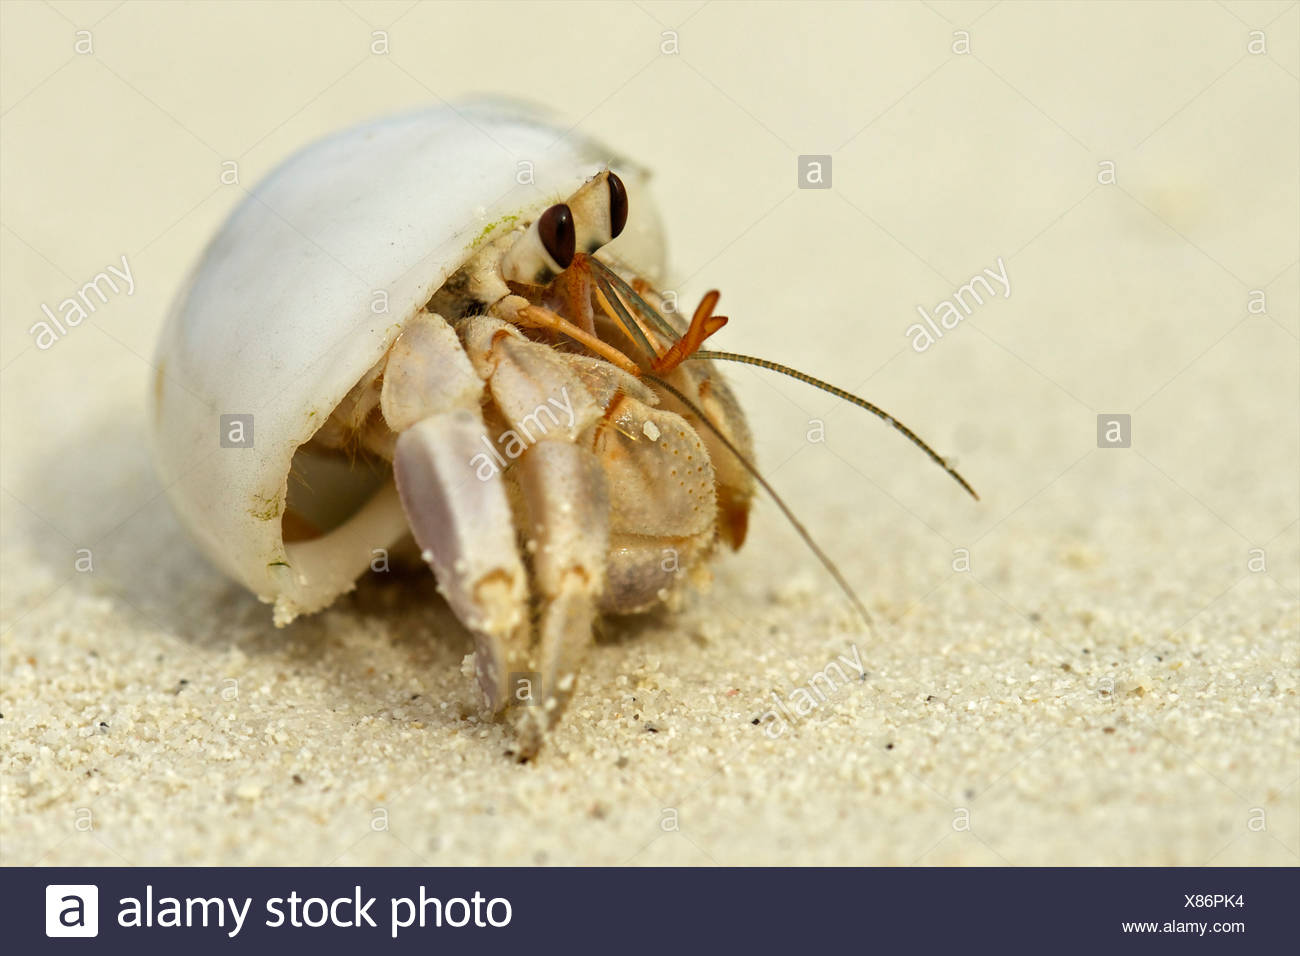 Hermit crab in a shell, Maldives - Stock Image